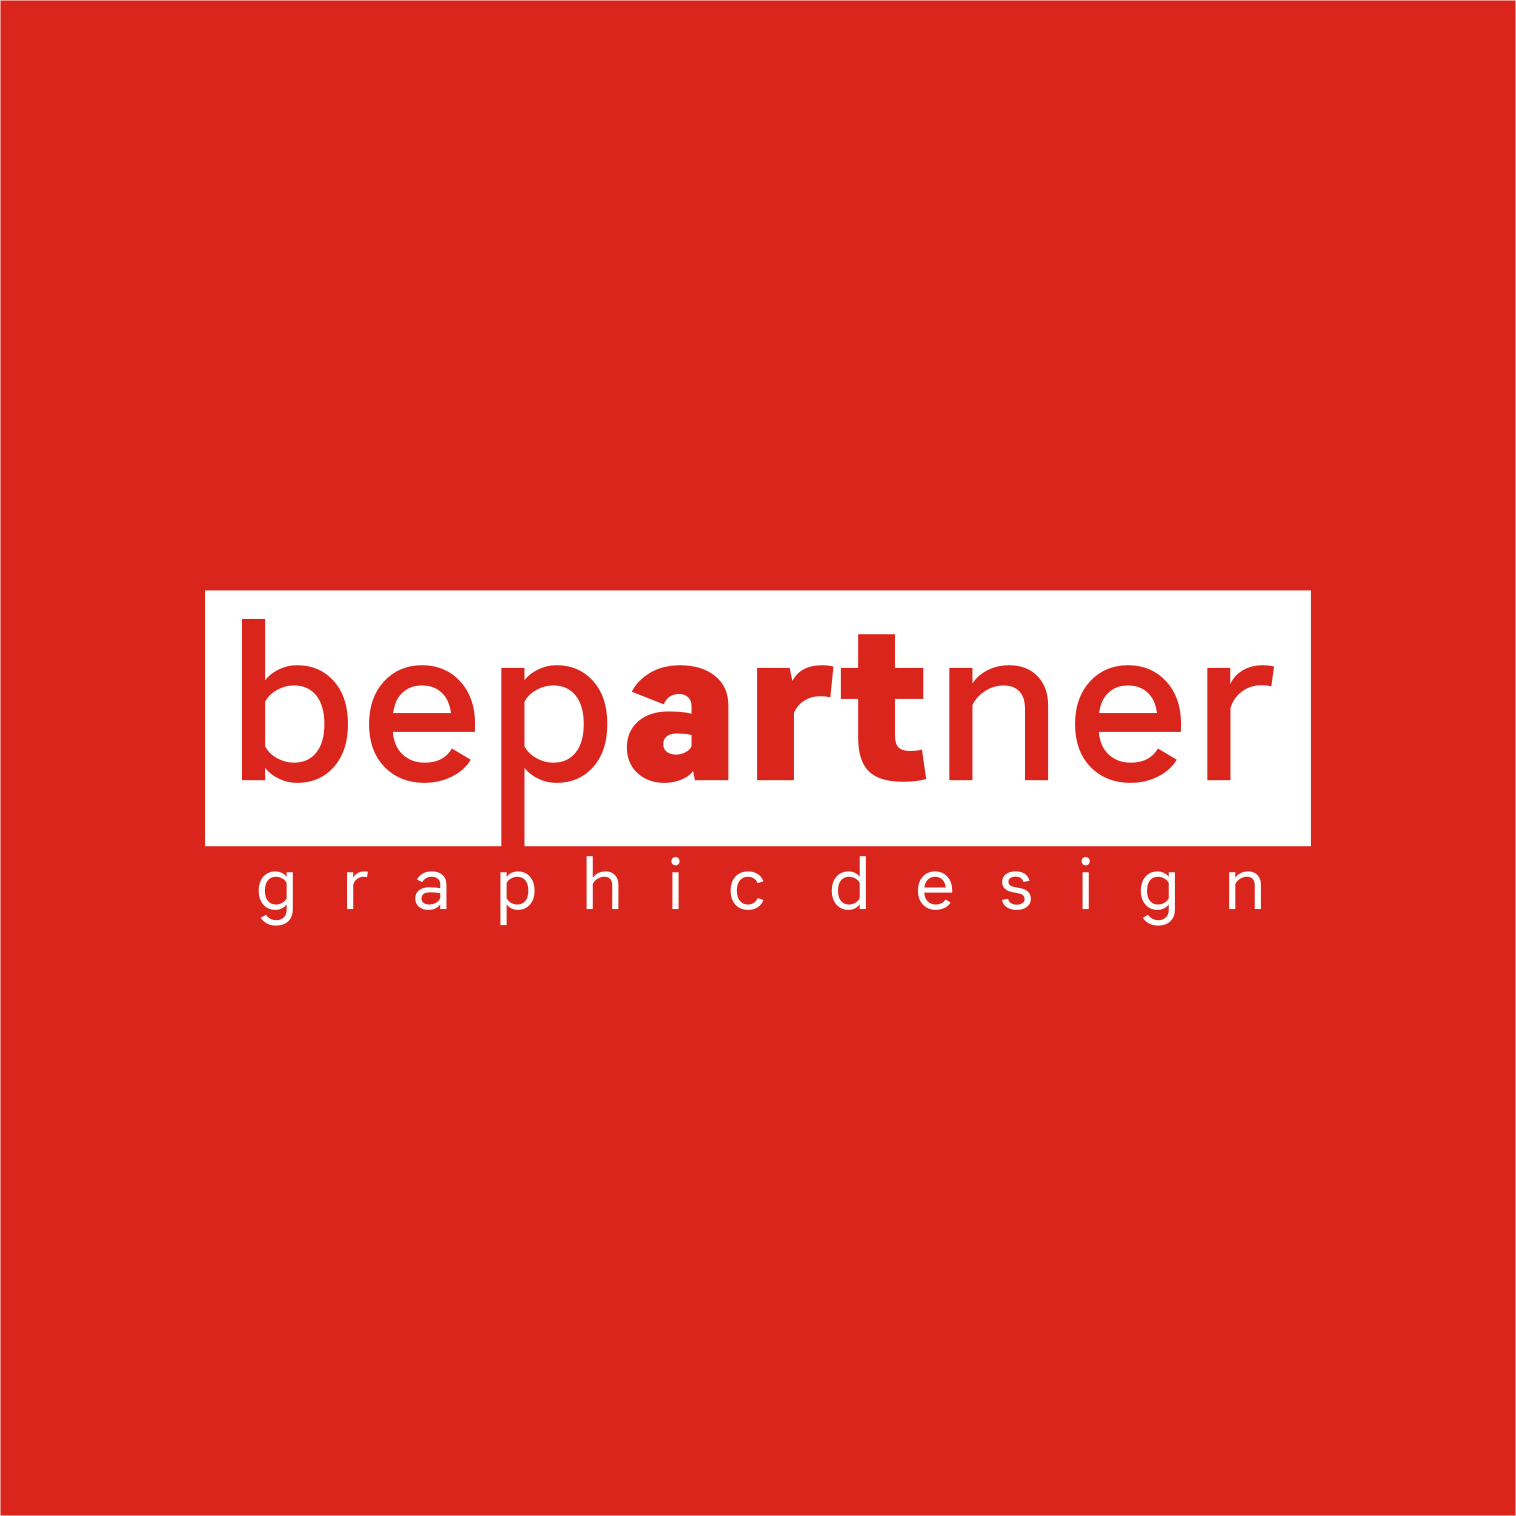 bepartner